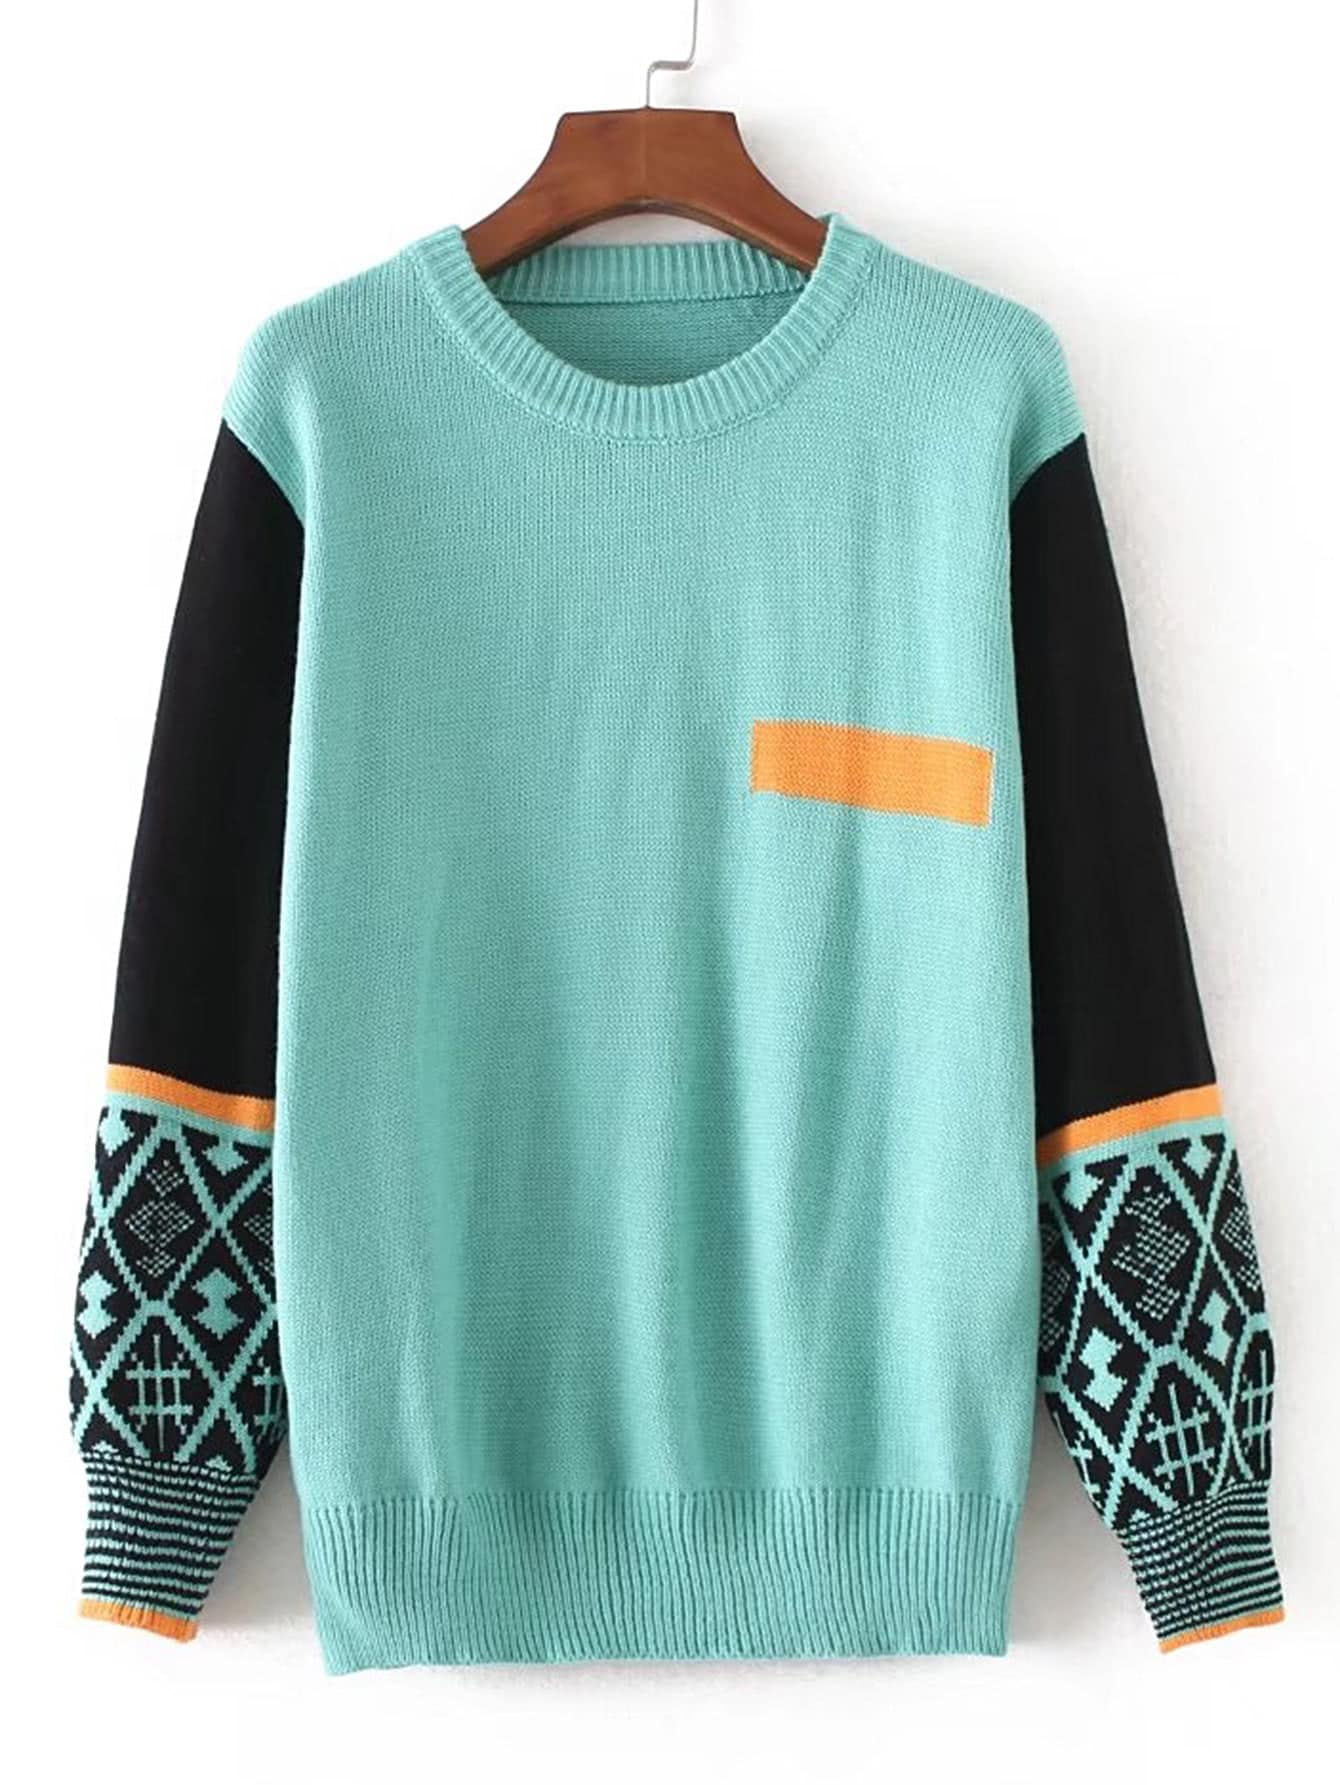 Contrast Sleeve Ribbed Trim Sweater sweater170810204